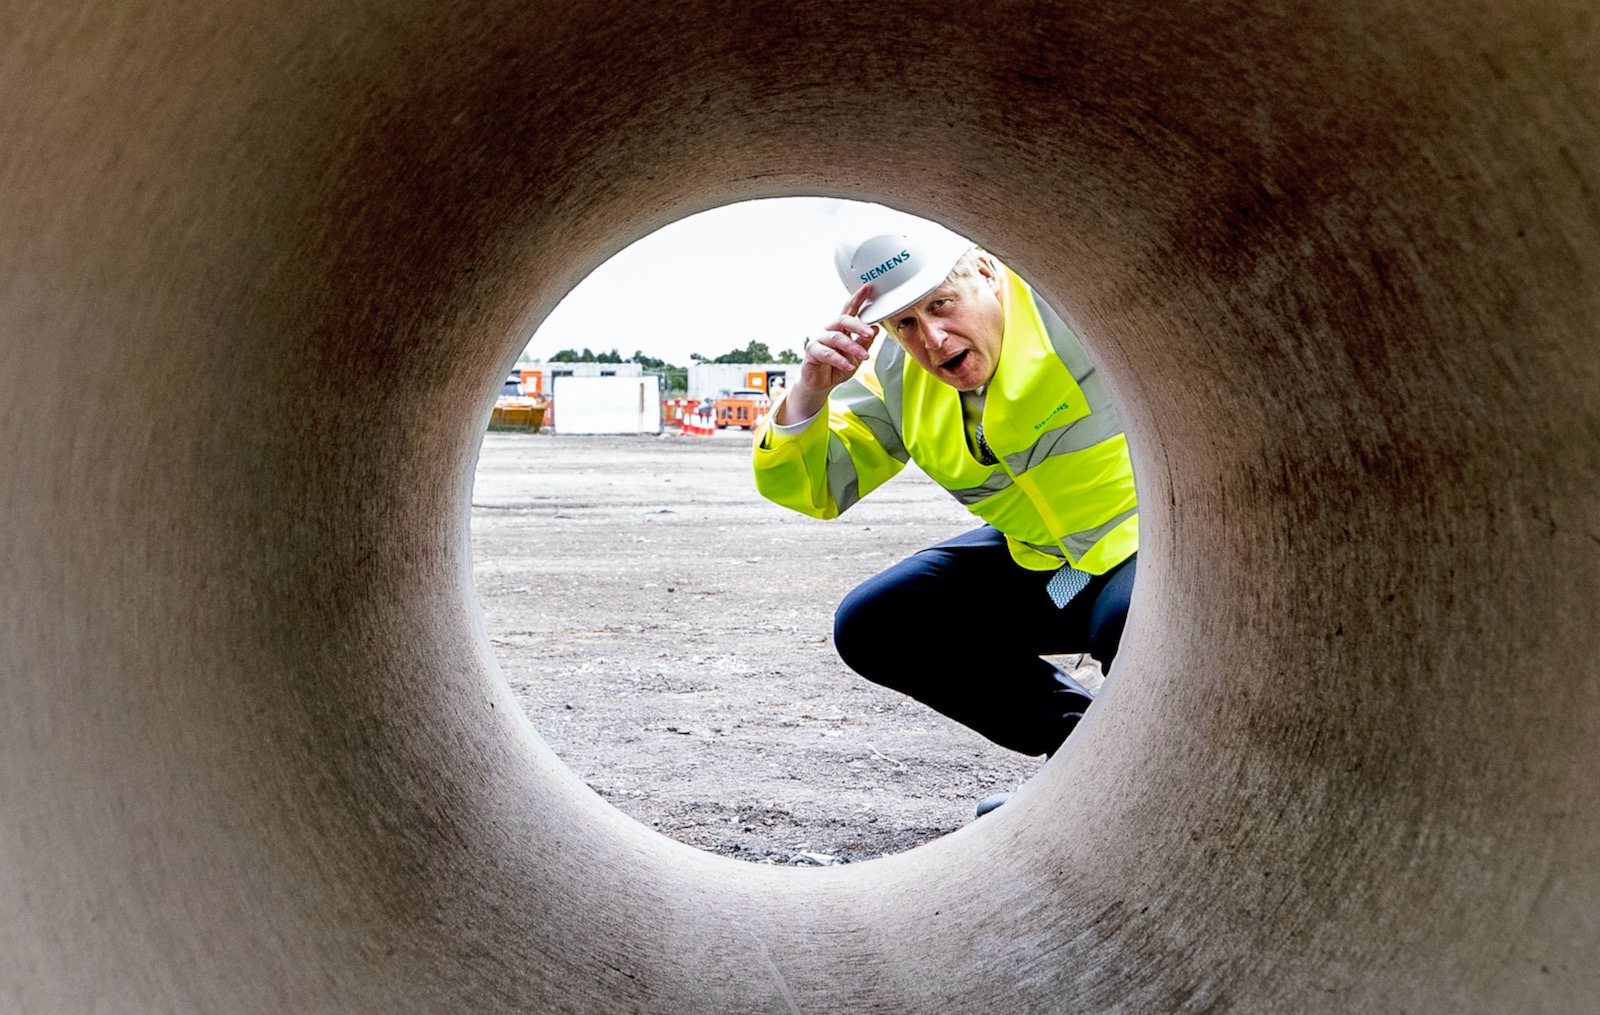 Prime Minister Boris Johnson looking through a pipe during a visit to a Siemens Rail factory construction site, Goole, England, July 6, 2020